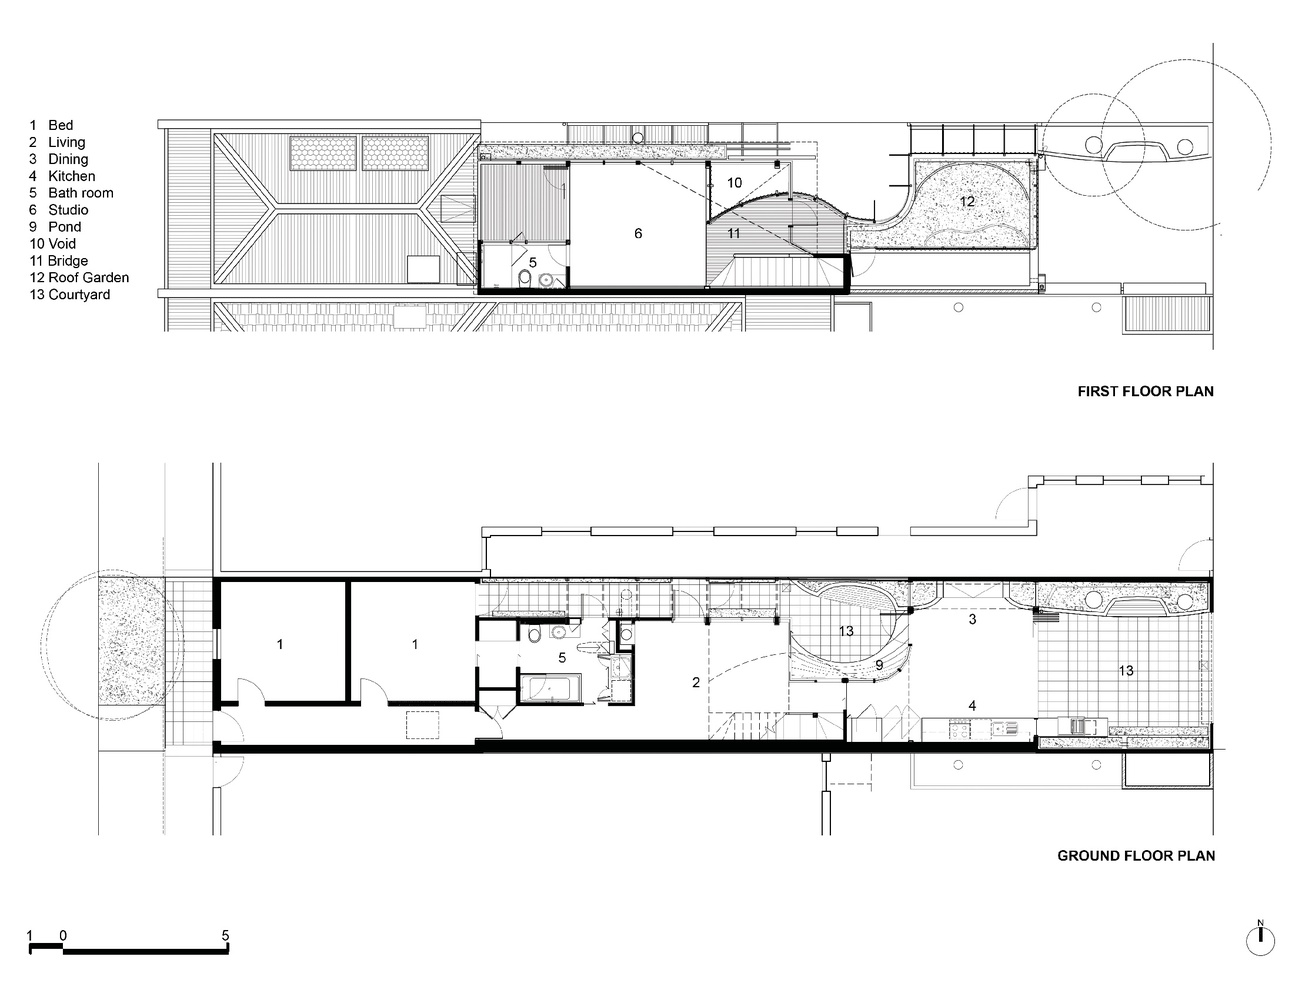 Gallery of Green House / Zen Architects - 9 on green architecture house plans, lake view floor plans, green ranch house plans, adult community floor plans, green house blog, green house foundations, green garage plans, green house brochures, community pool floor plans, green house kitchens, commercial floor plans, gardening floor plans, building floor plans, green small house plans, garden office floor plans, water floor plans, foreclosure floor plans, green house architects, home floor plans, computer room floor plans,